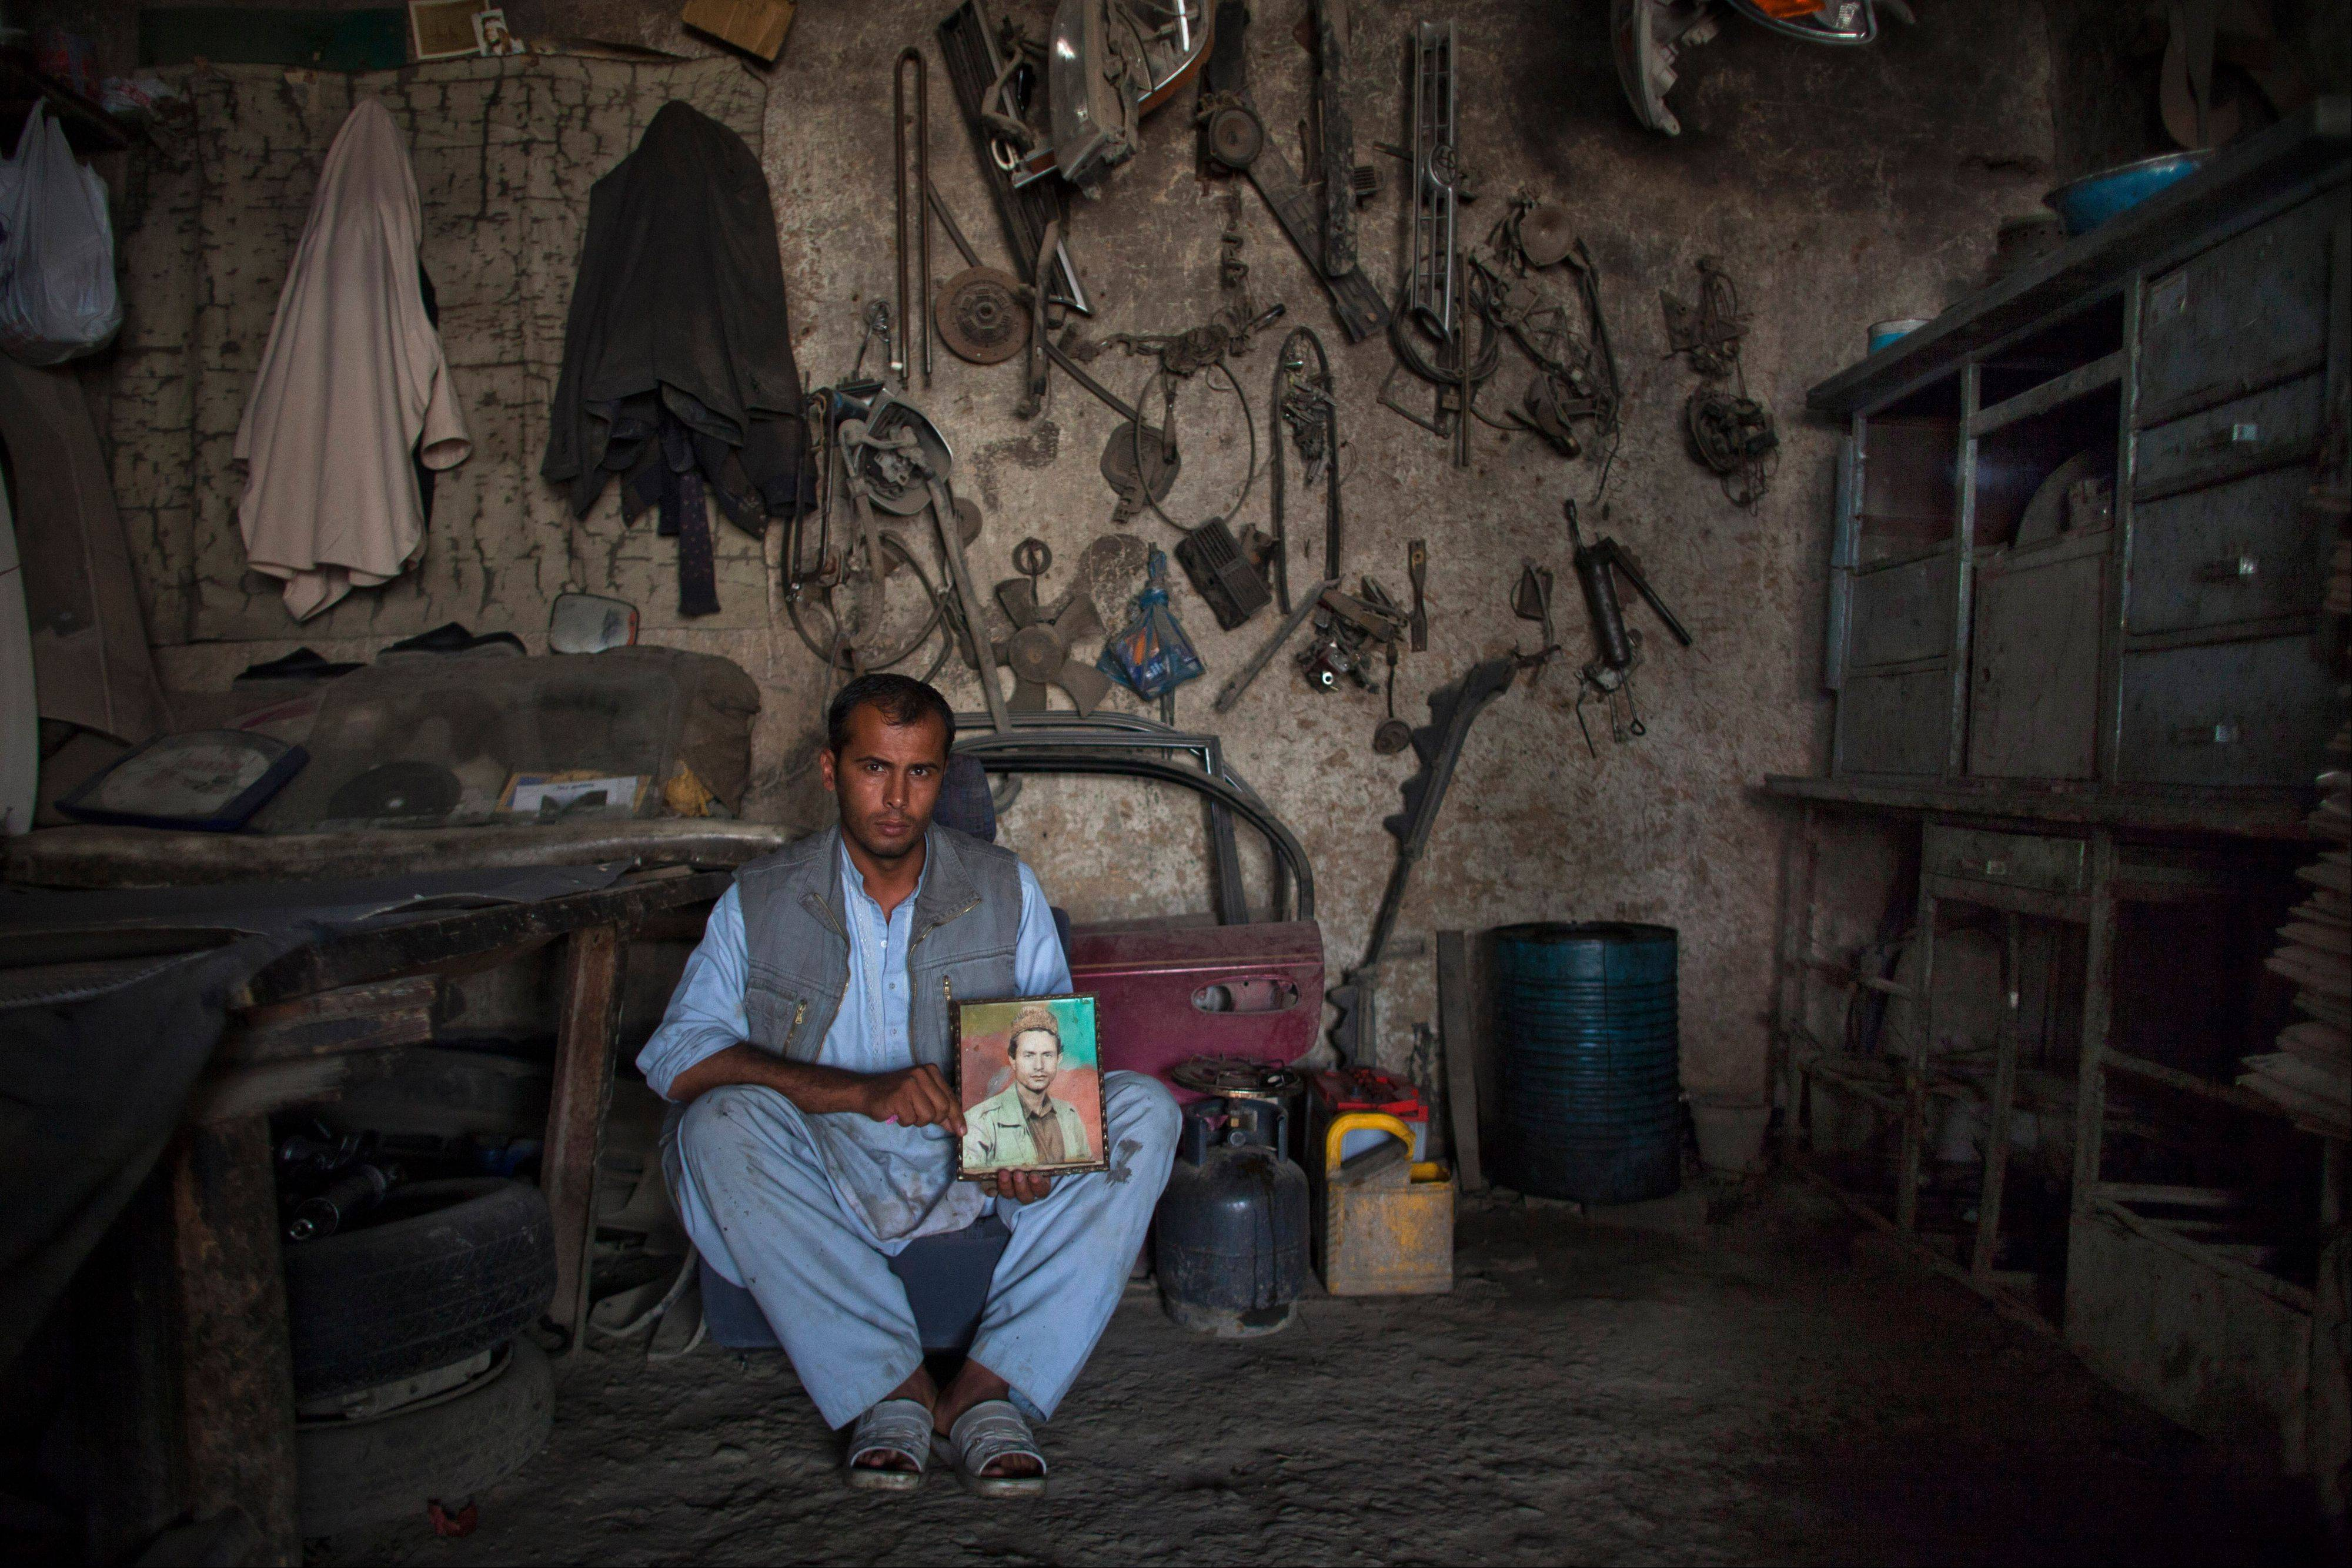 In this Saturday, Oct. 6, 2012 photo, Shah Ker, 29, a car mechanic, poses in the shop he inherited from his father Ramdil Shah who was killed during the Afghan civil war in 1993 in Kabul, Afghanistan.